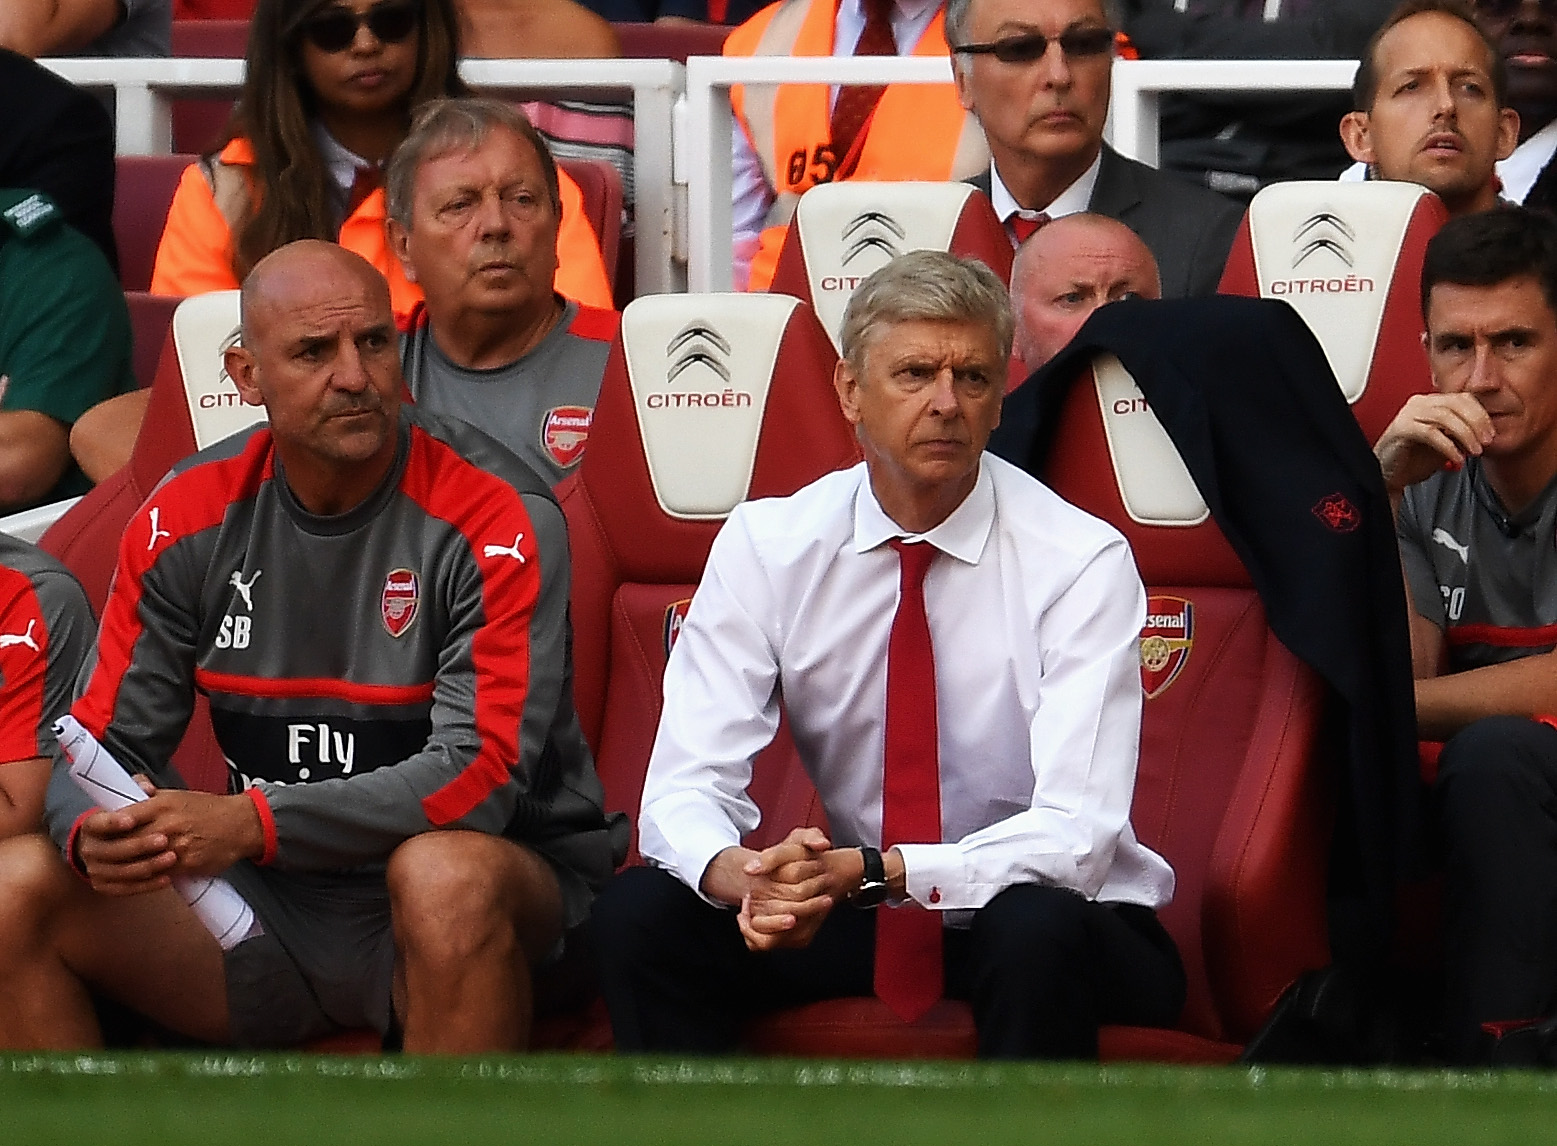 Arsenal: Arsene Wenger says he is '99% confident' of new signings before deadline day